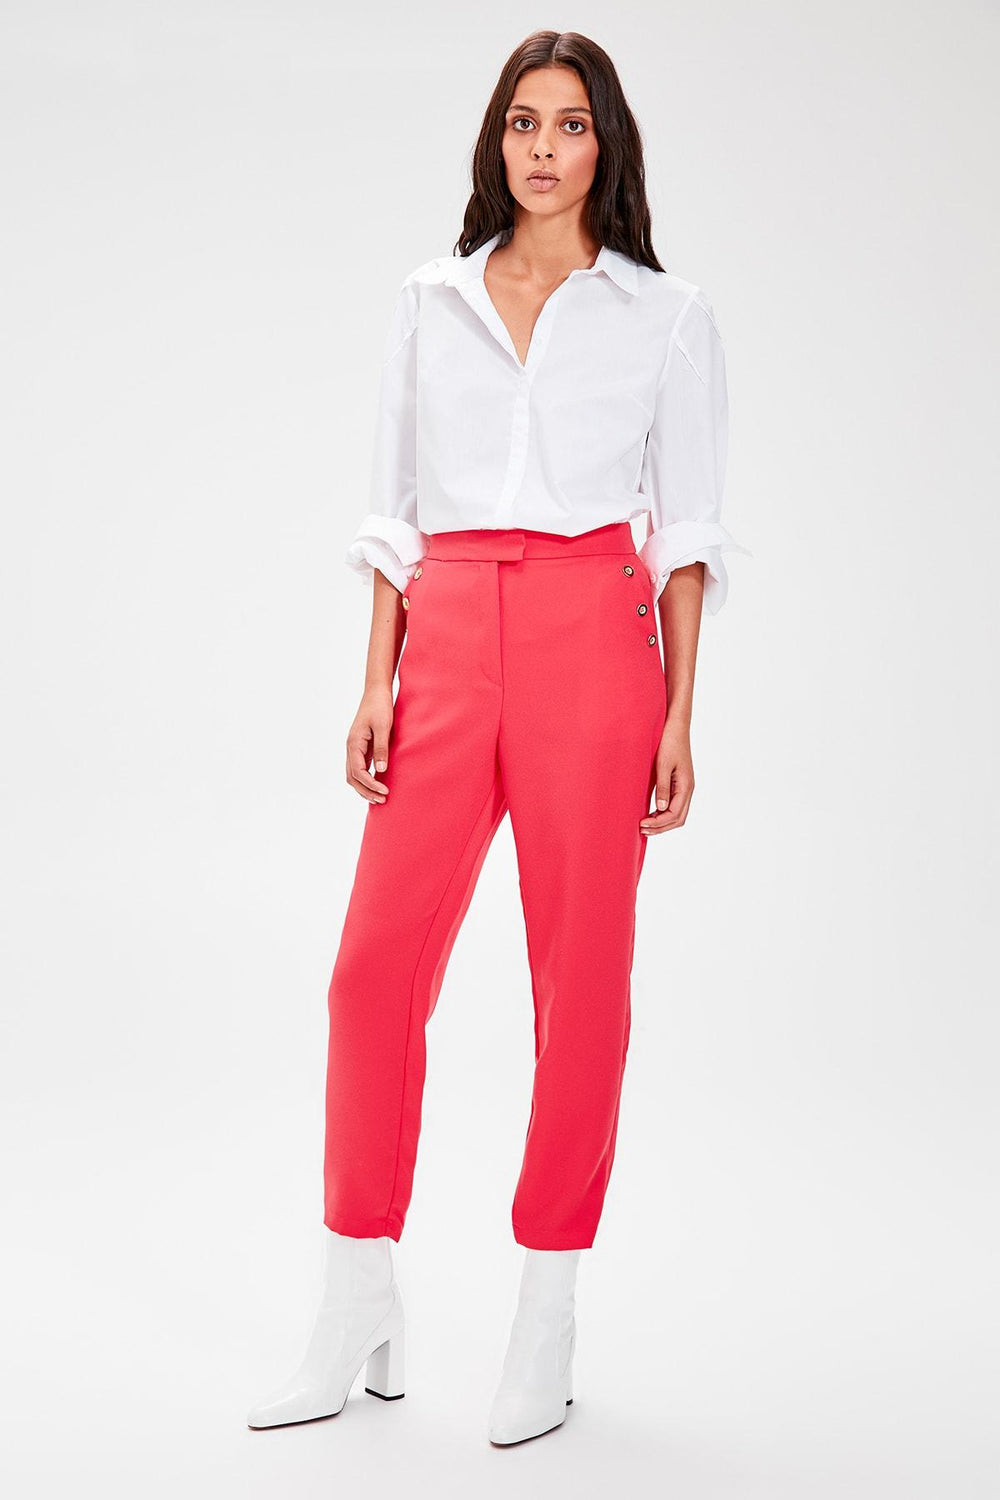 Miss Zut Miss Zut Pink Button Detail Pants Miss Zut &CO